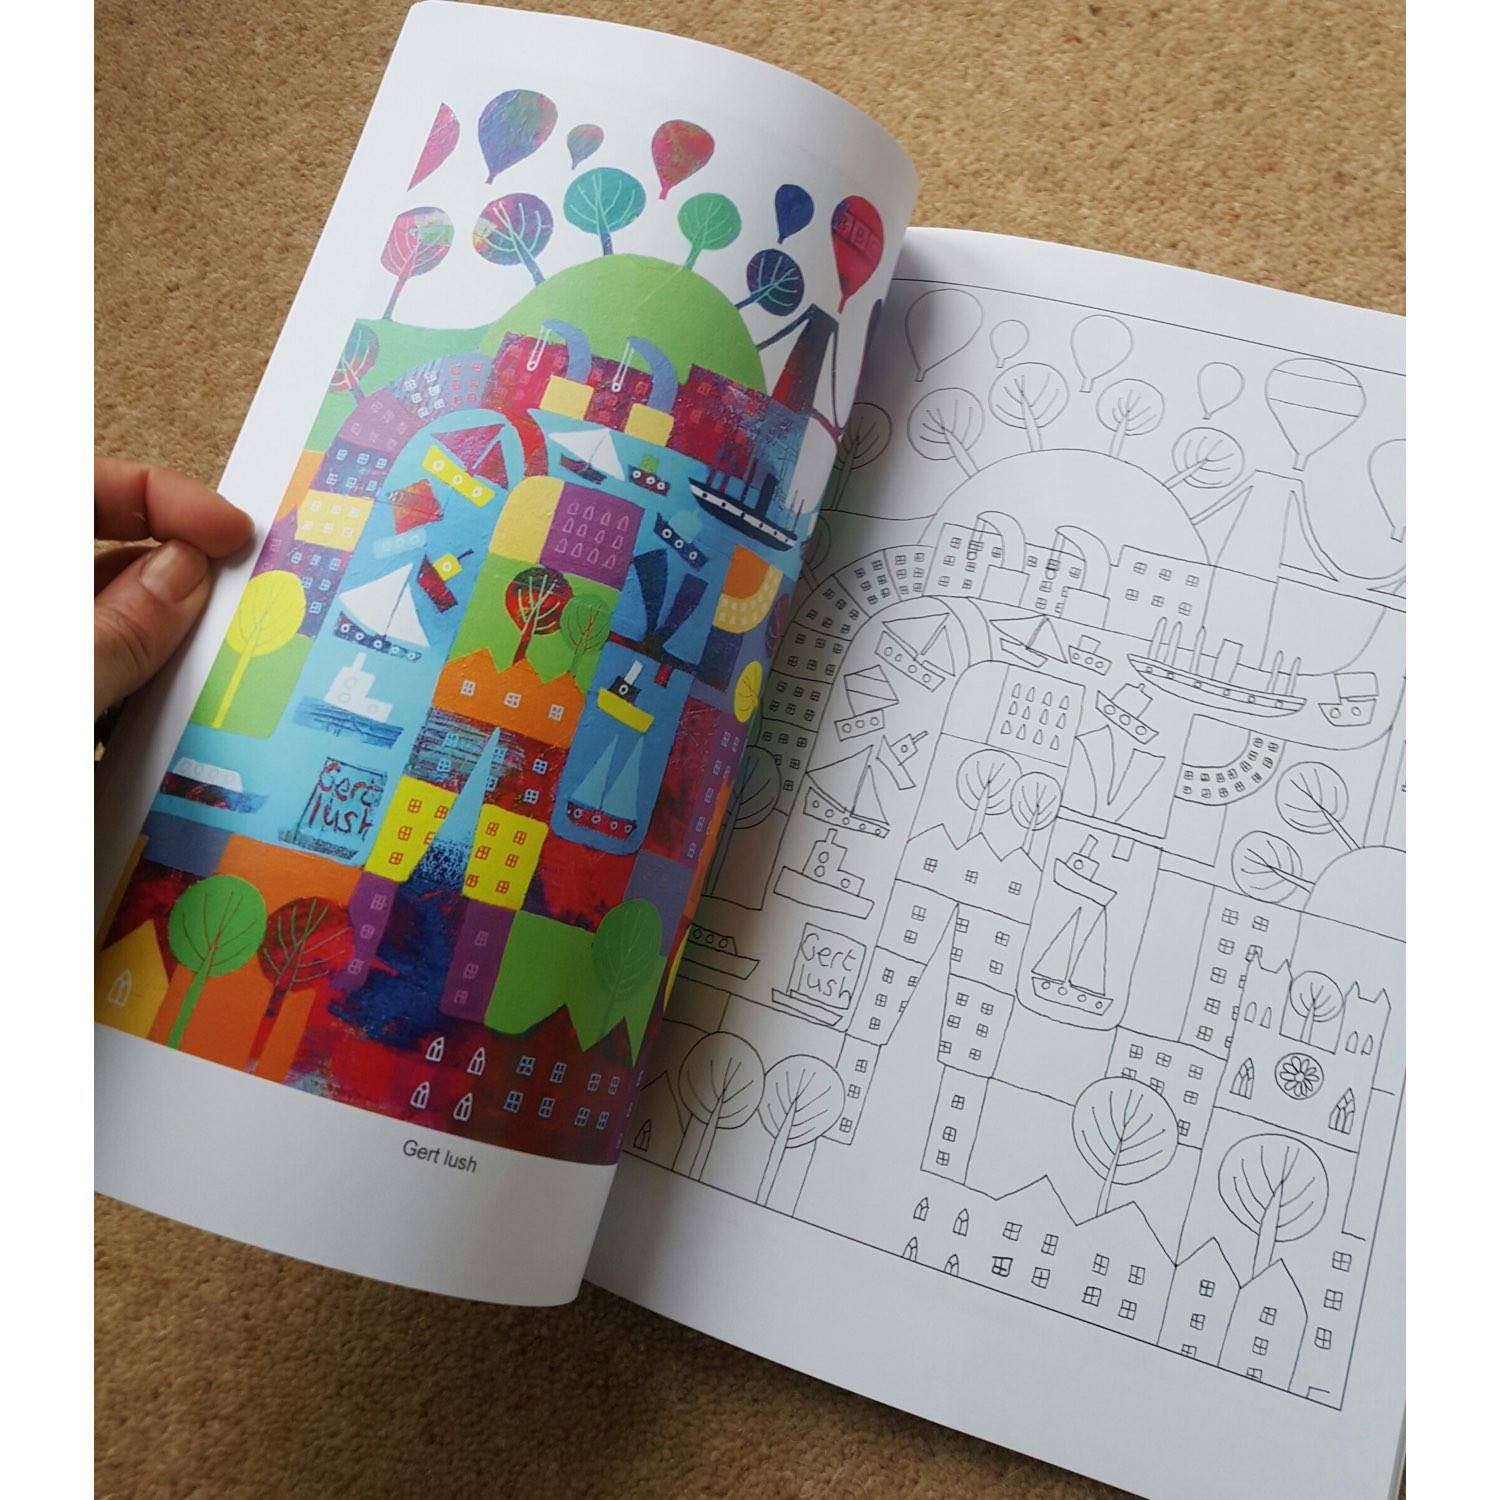 Jenny Urquhart's Bristol Colouring Book | The Bristol Shop